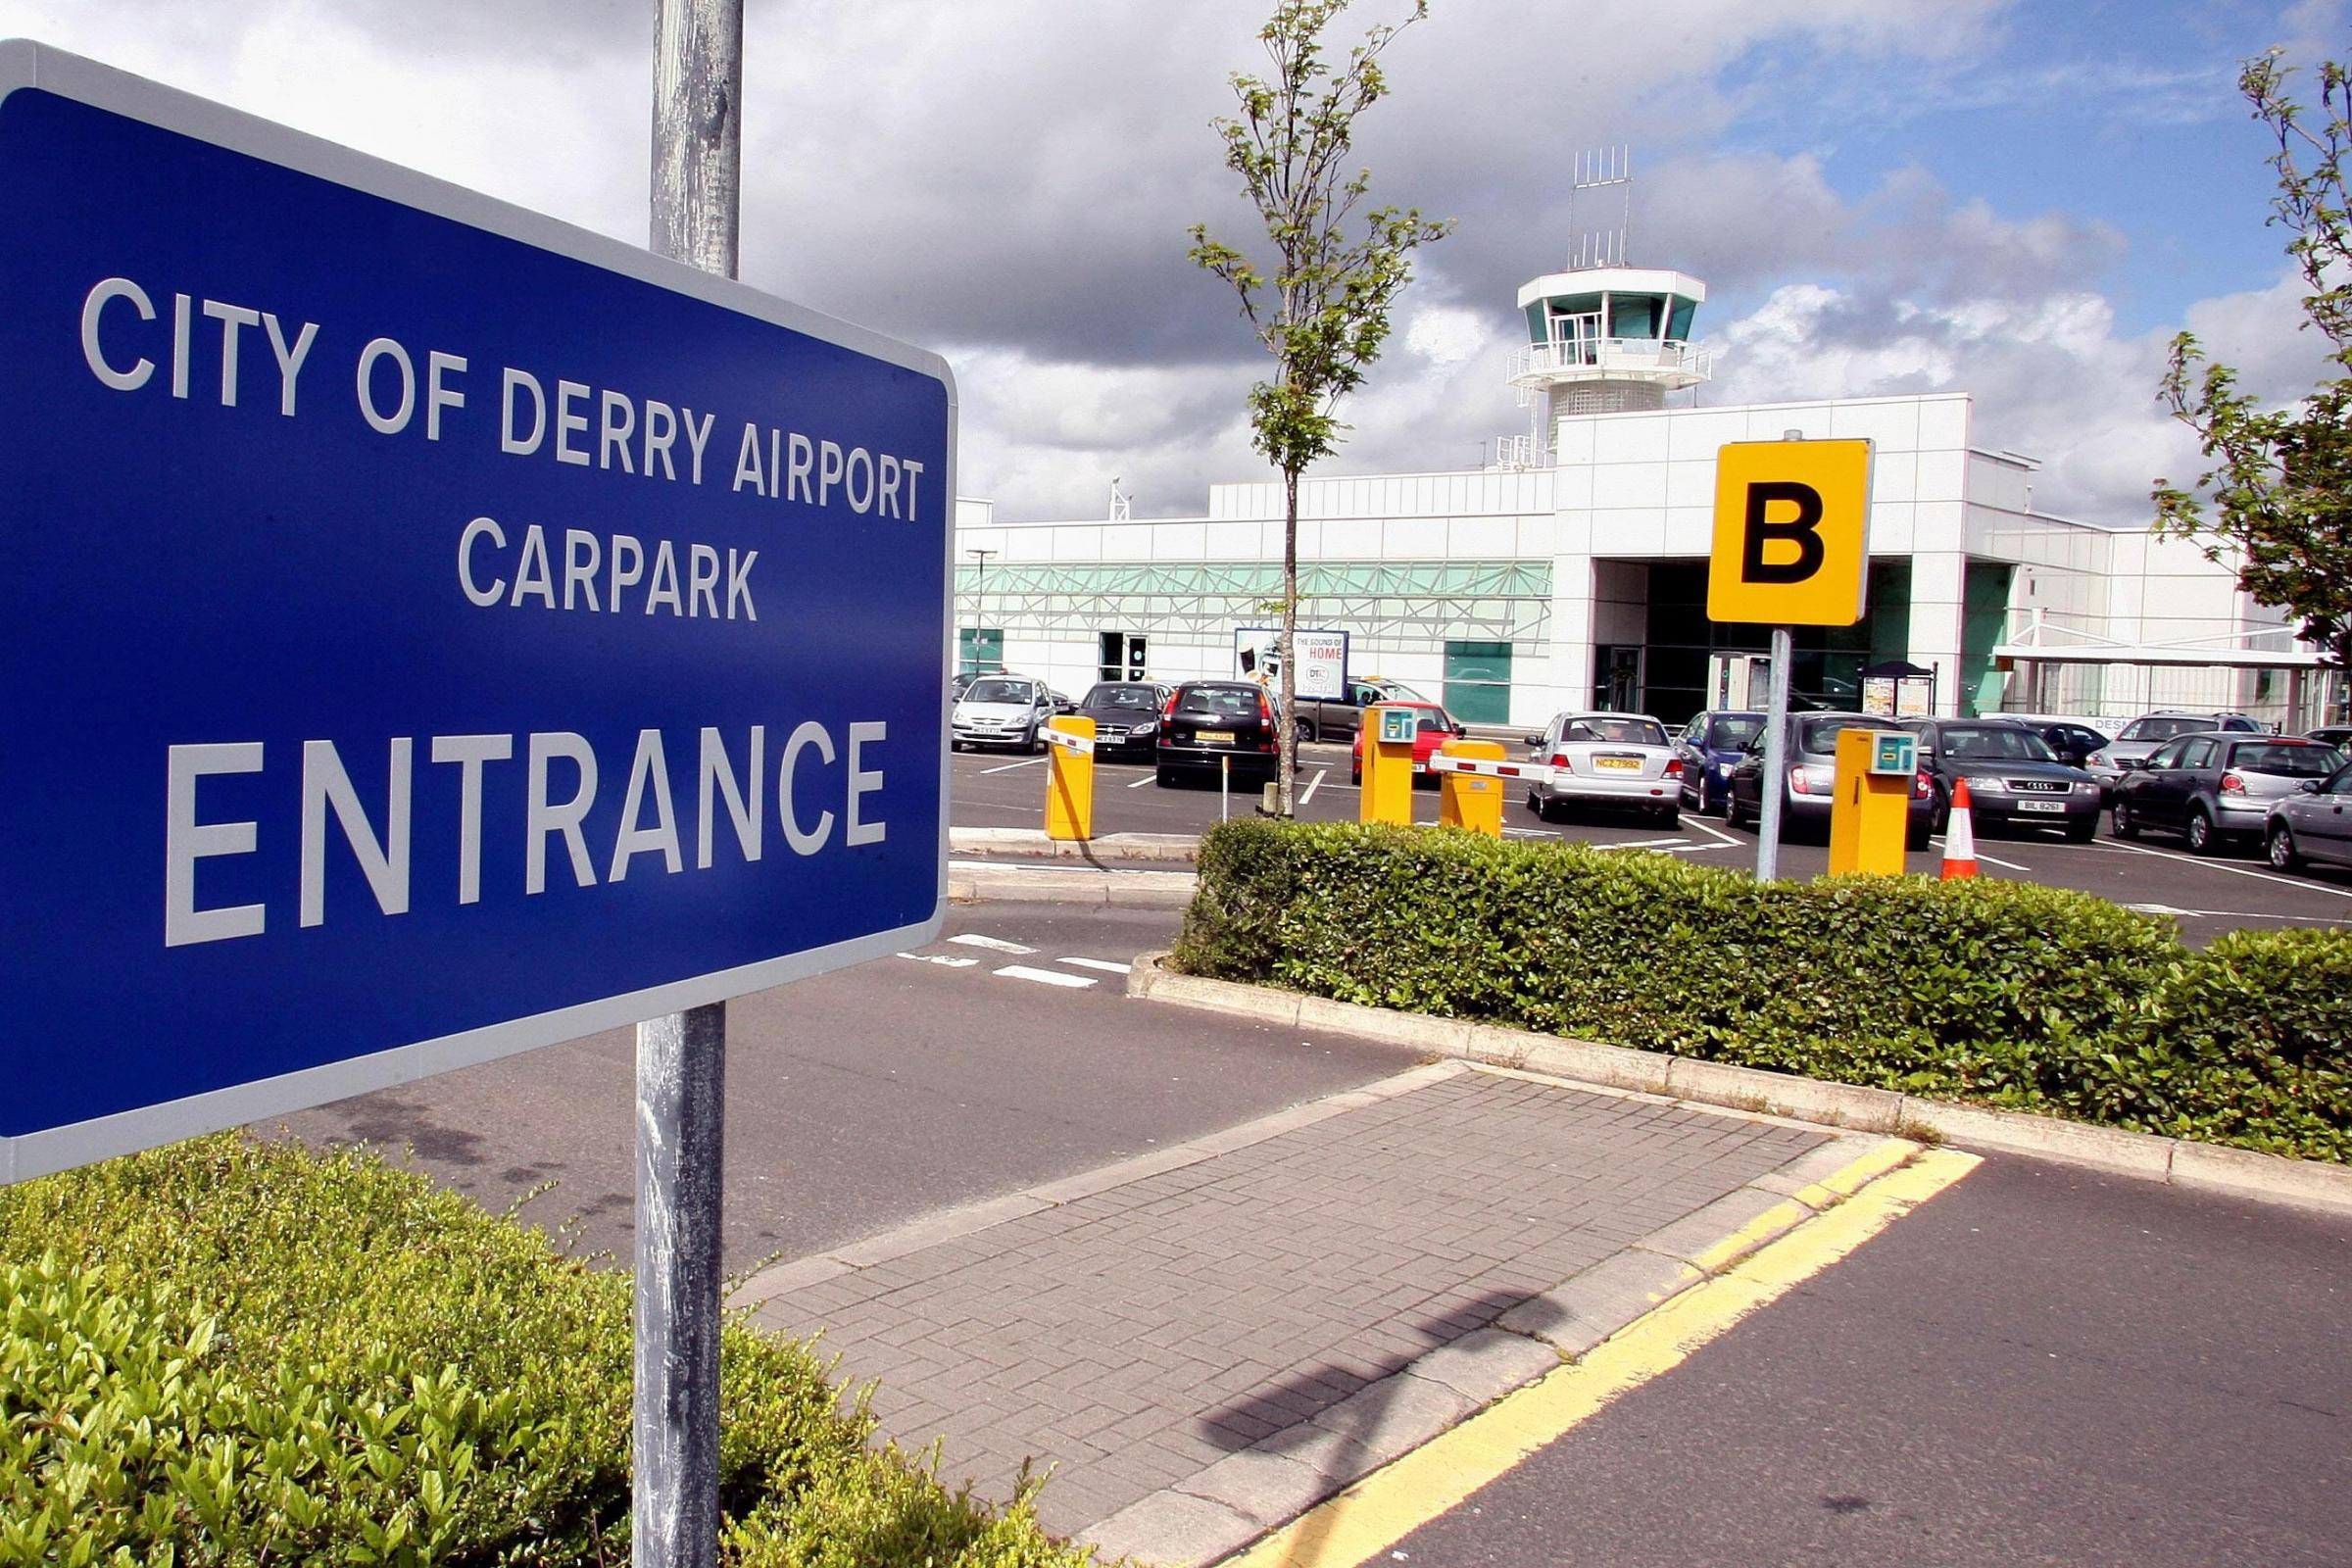 Discussions over flight suspension at Derry airport